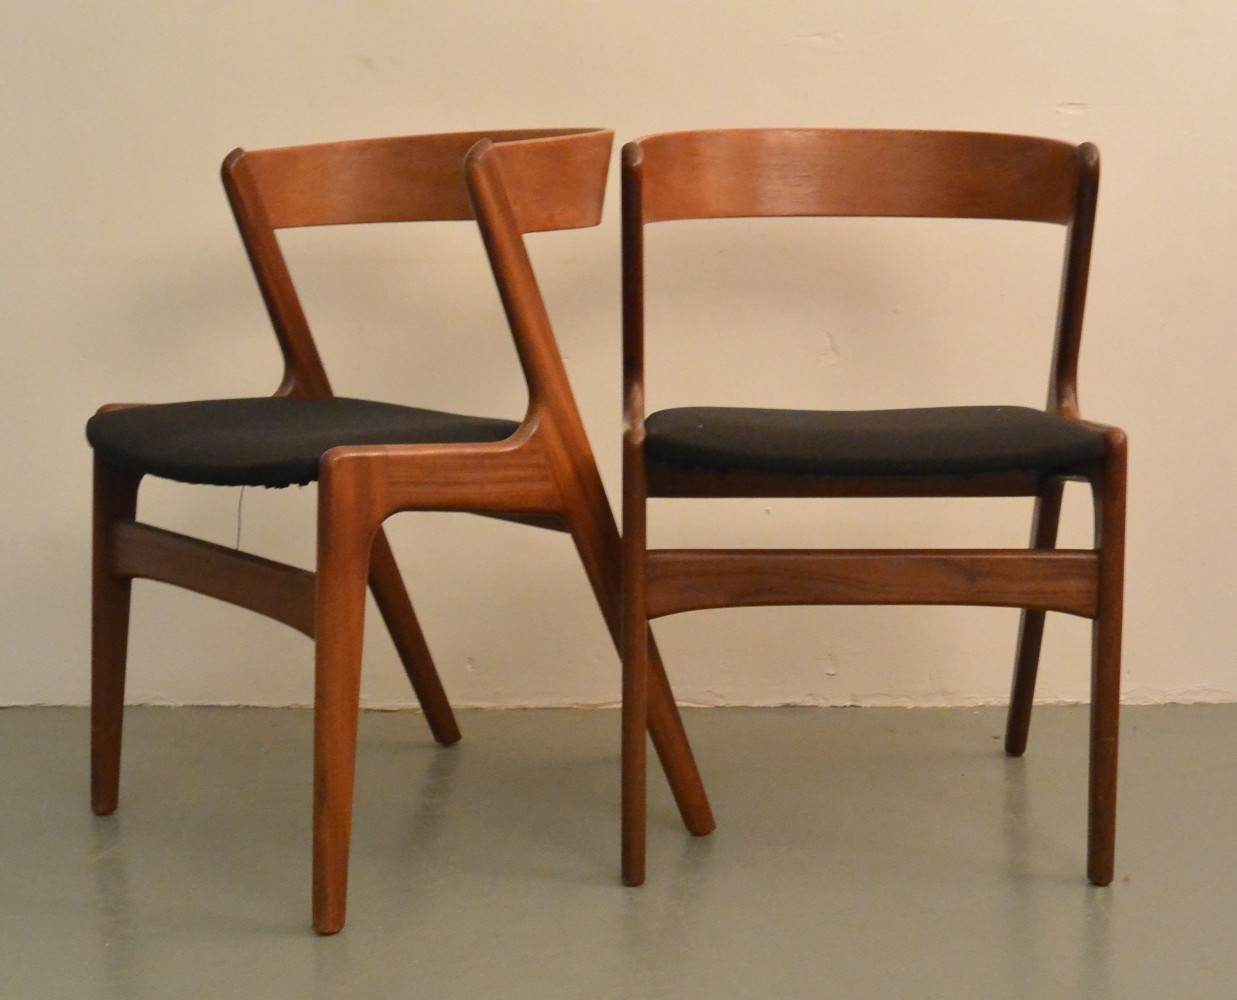 Set of 2 Kai Kristiansen